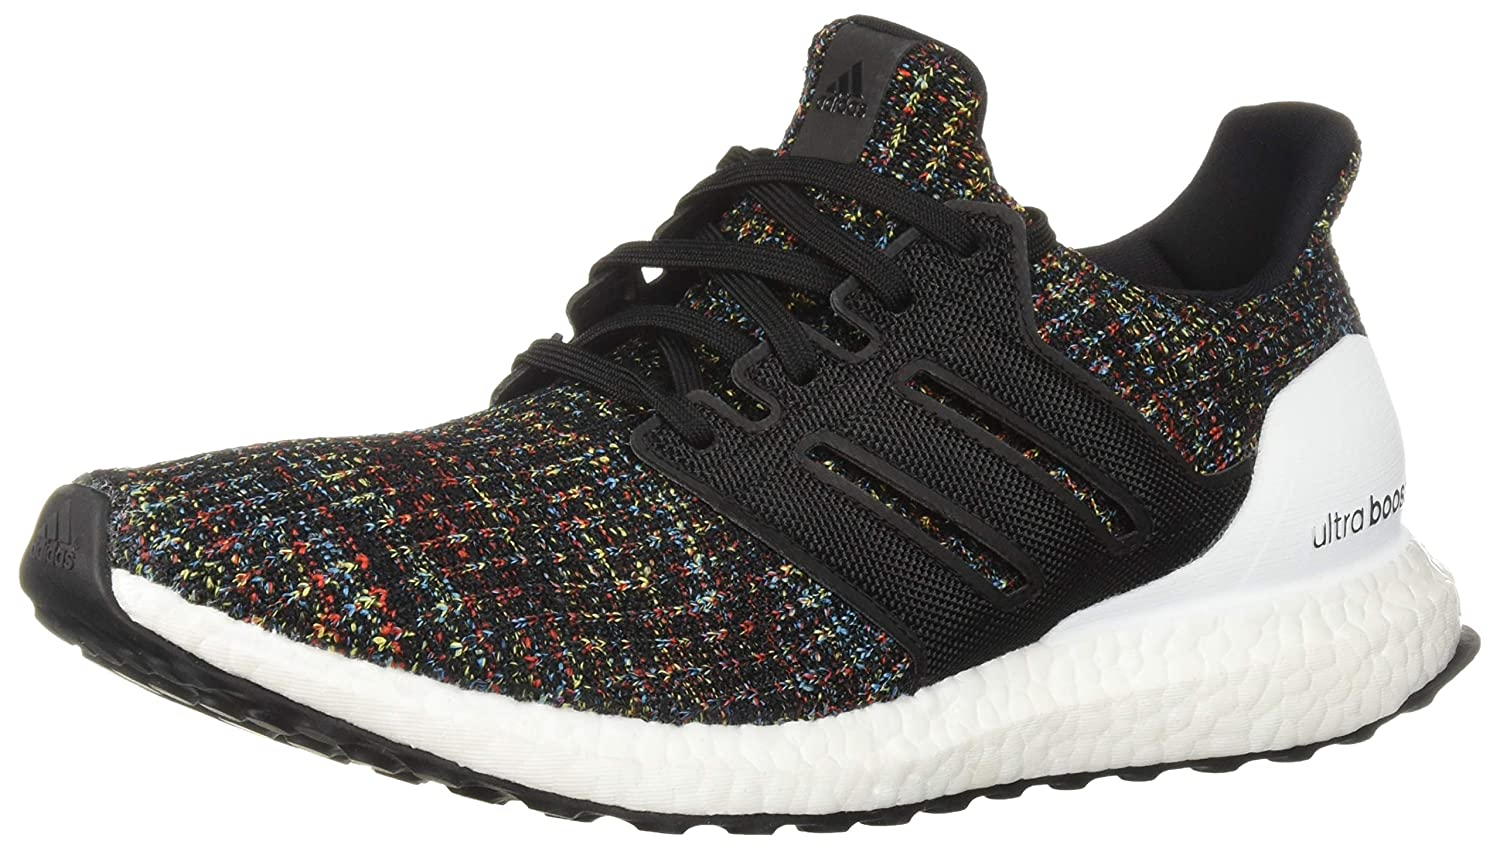 8d67f953220 Amazon.com | adidas Men's Ultra Boost Running Shoe | Road Running